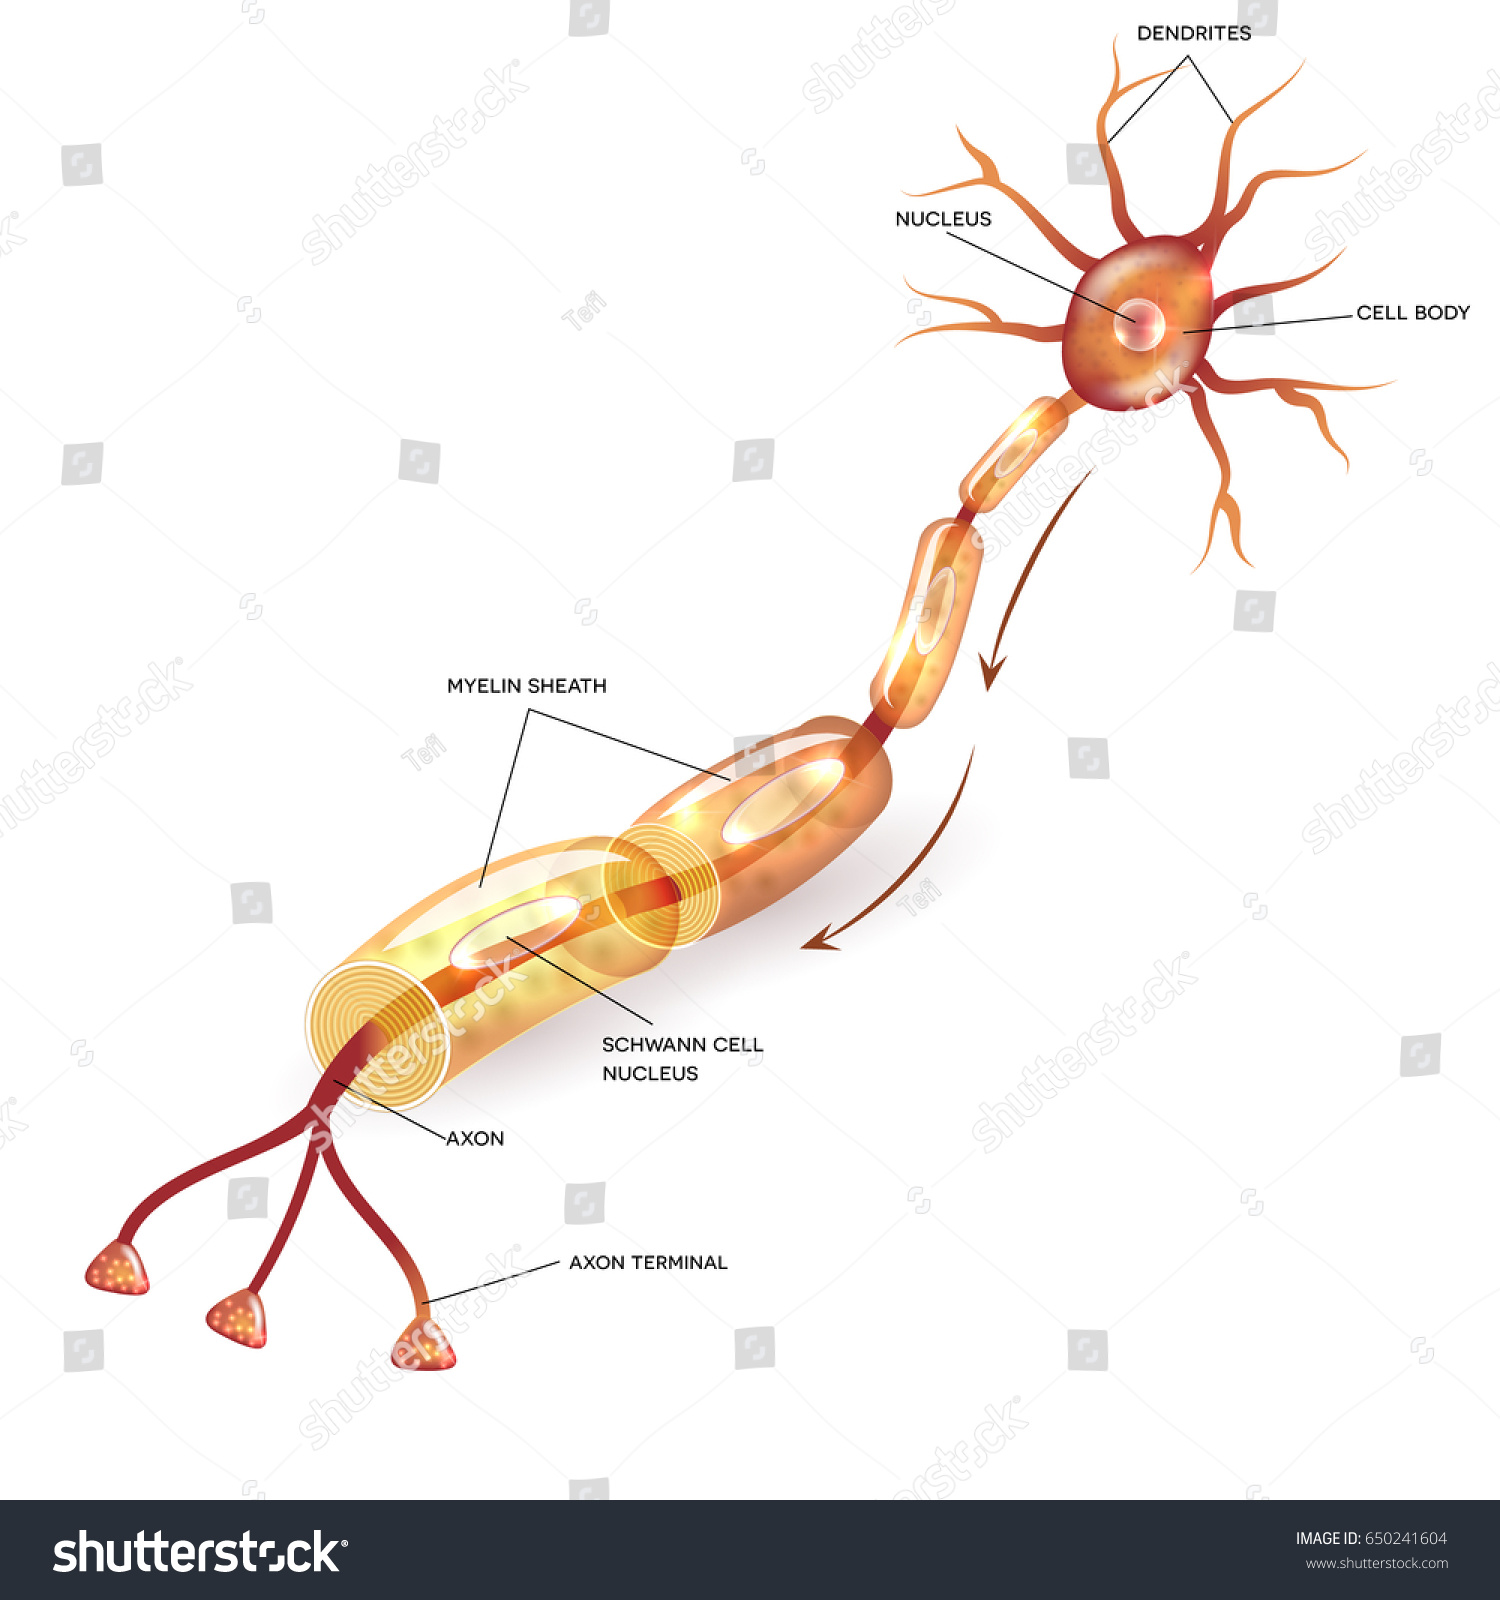 Neuron Nerve Cell That Is The Main Part Of Nervous System Detailed Diagram Cross Section Anatomy Nucleus And Other Organelles Ez Canvas